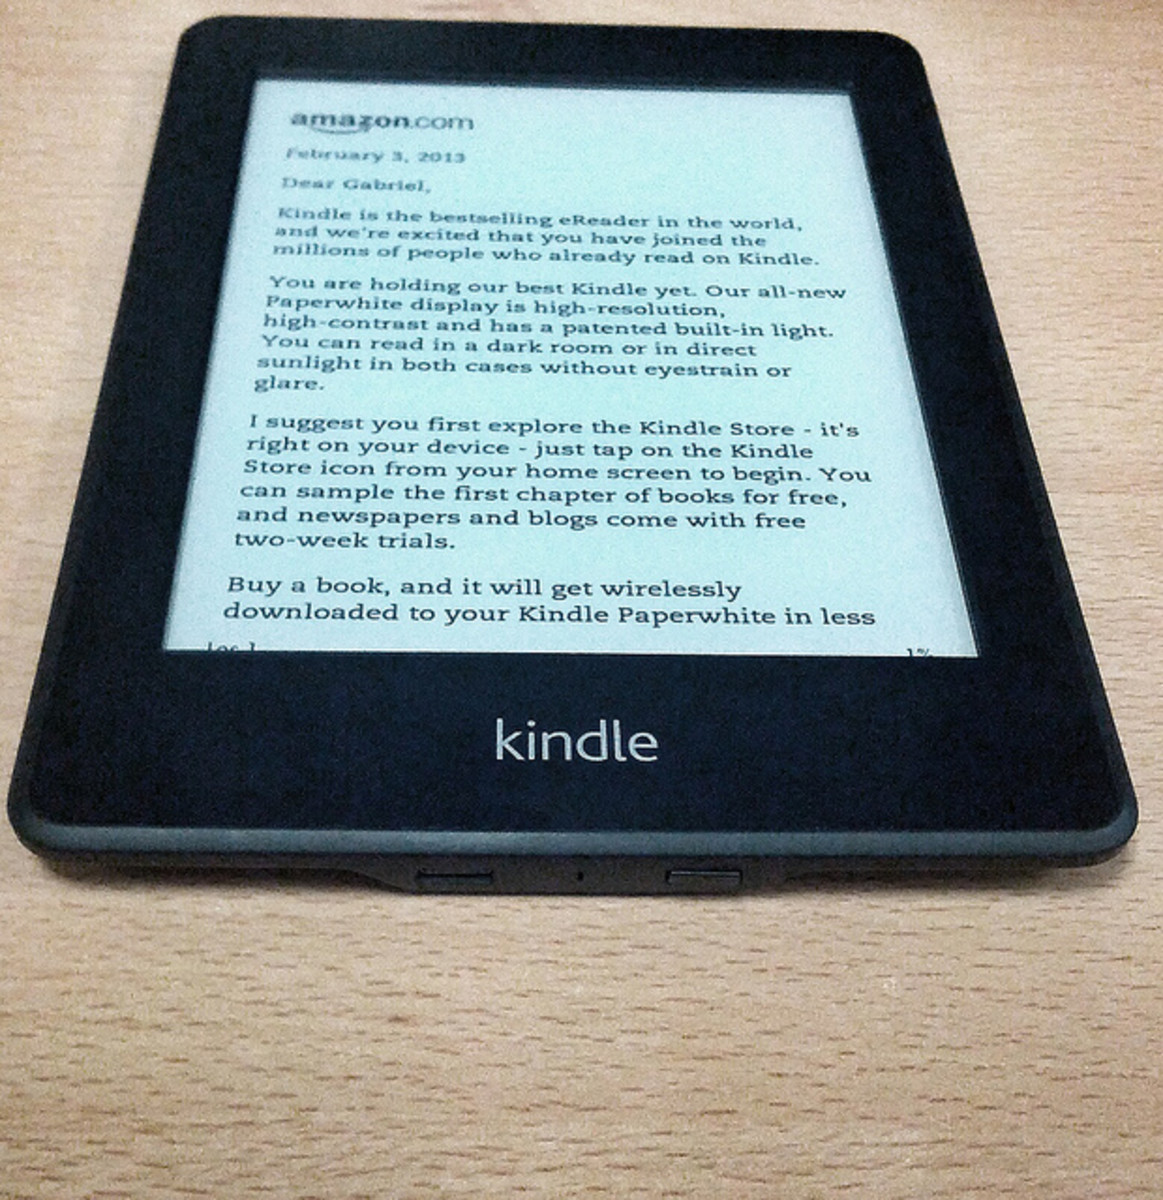 You can see the gentle glow of the Kindle Paperwhite in this picture. The settings allow for the lighting to be changed depending on the natural light available.